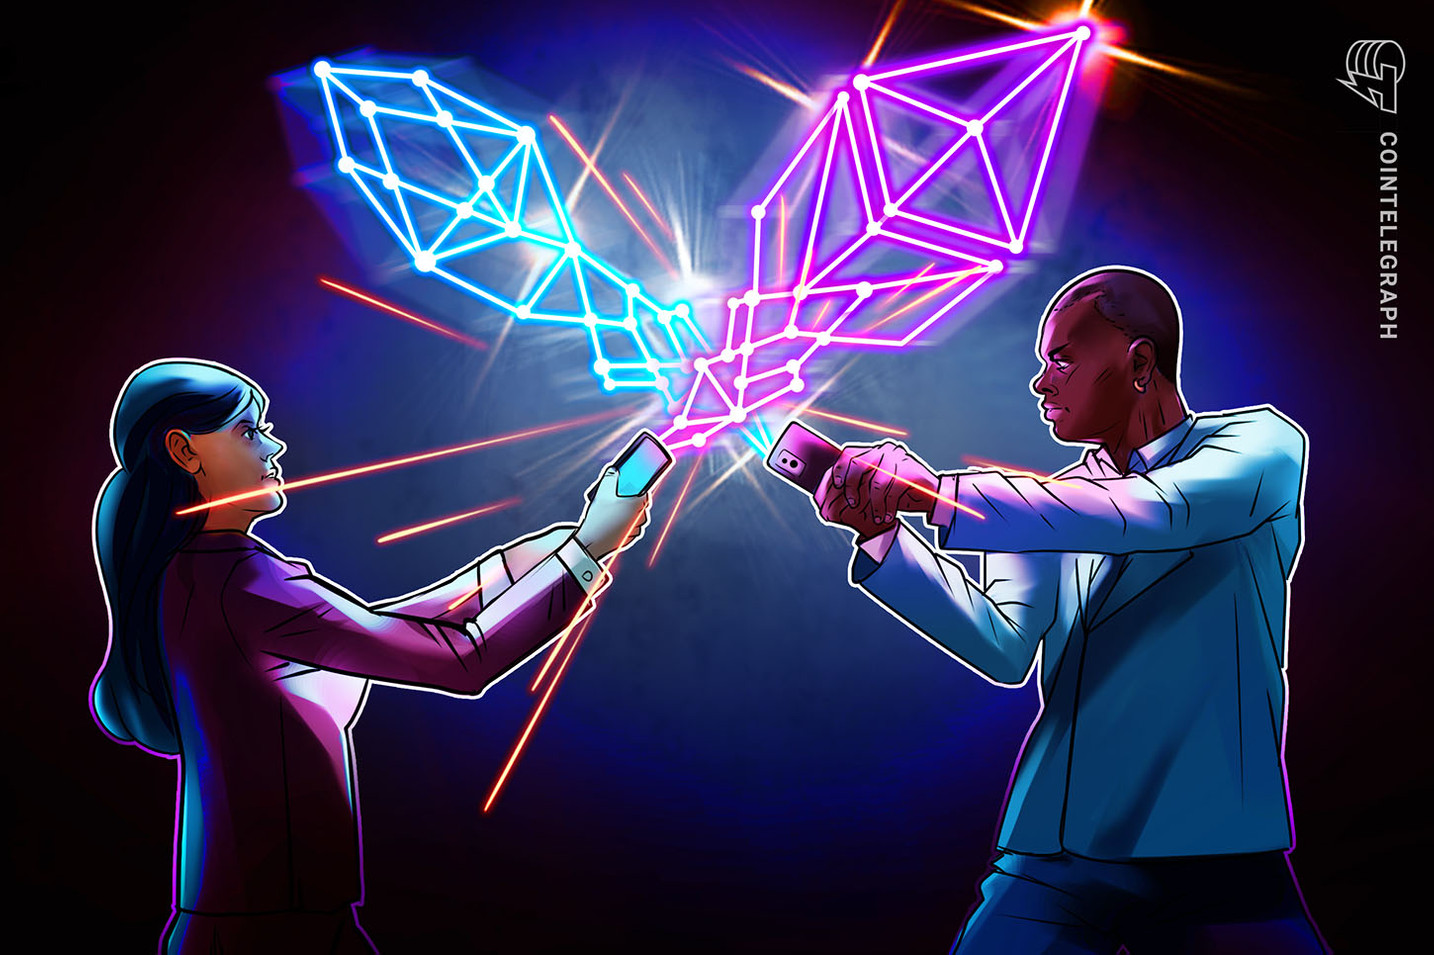 Ethereum 2.0 and EOS Crossing Swords Over Scalability Supremacy